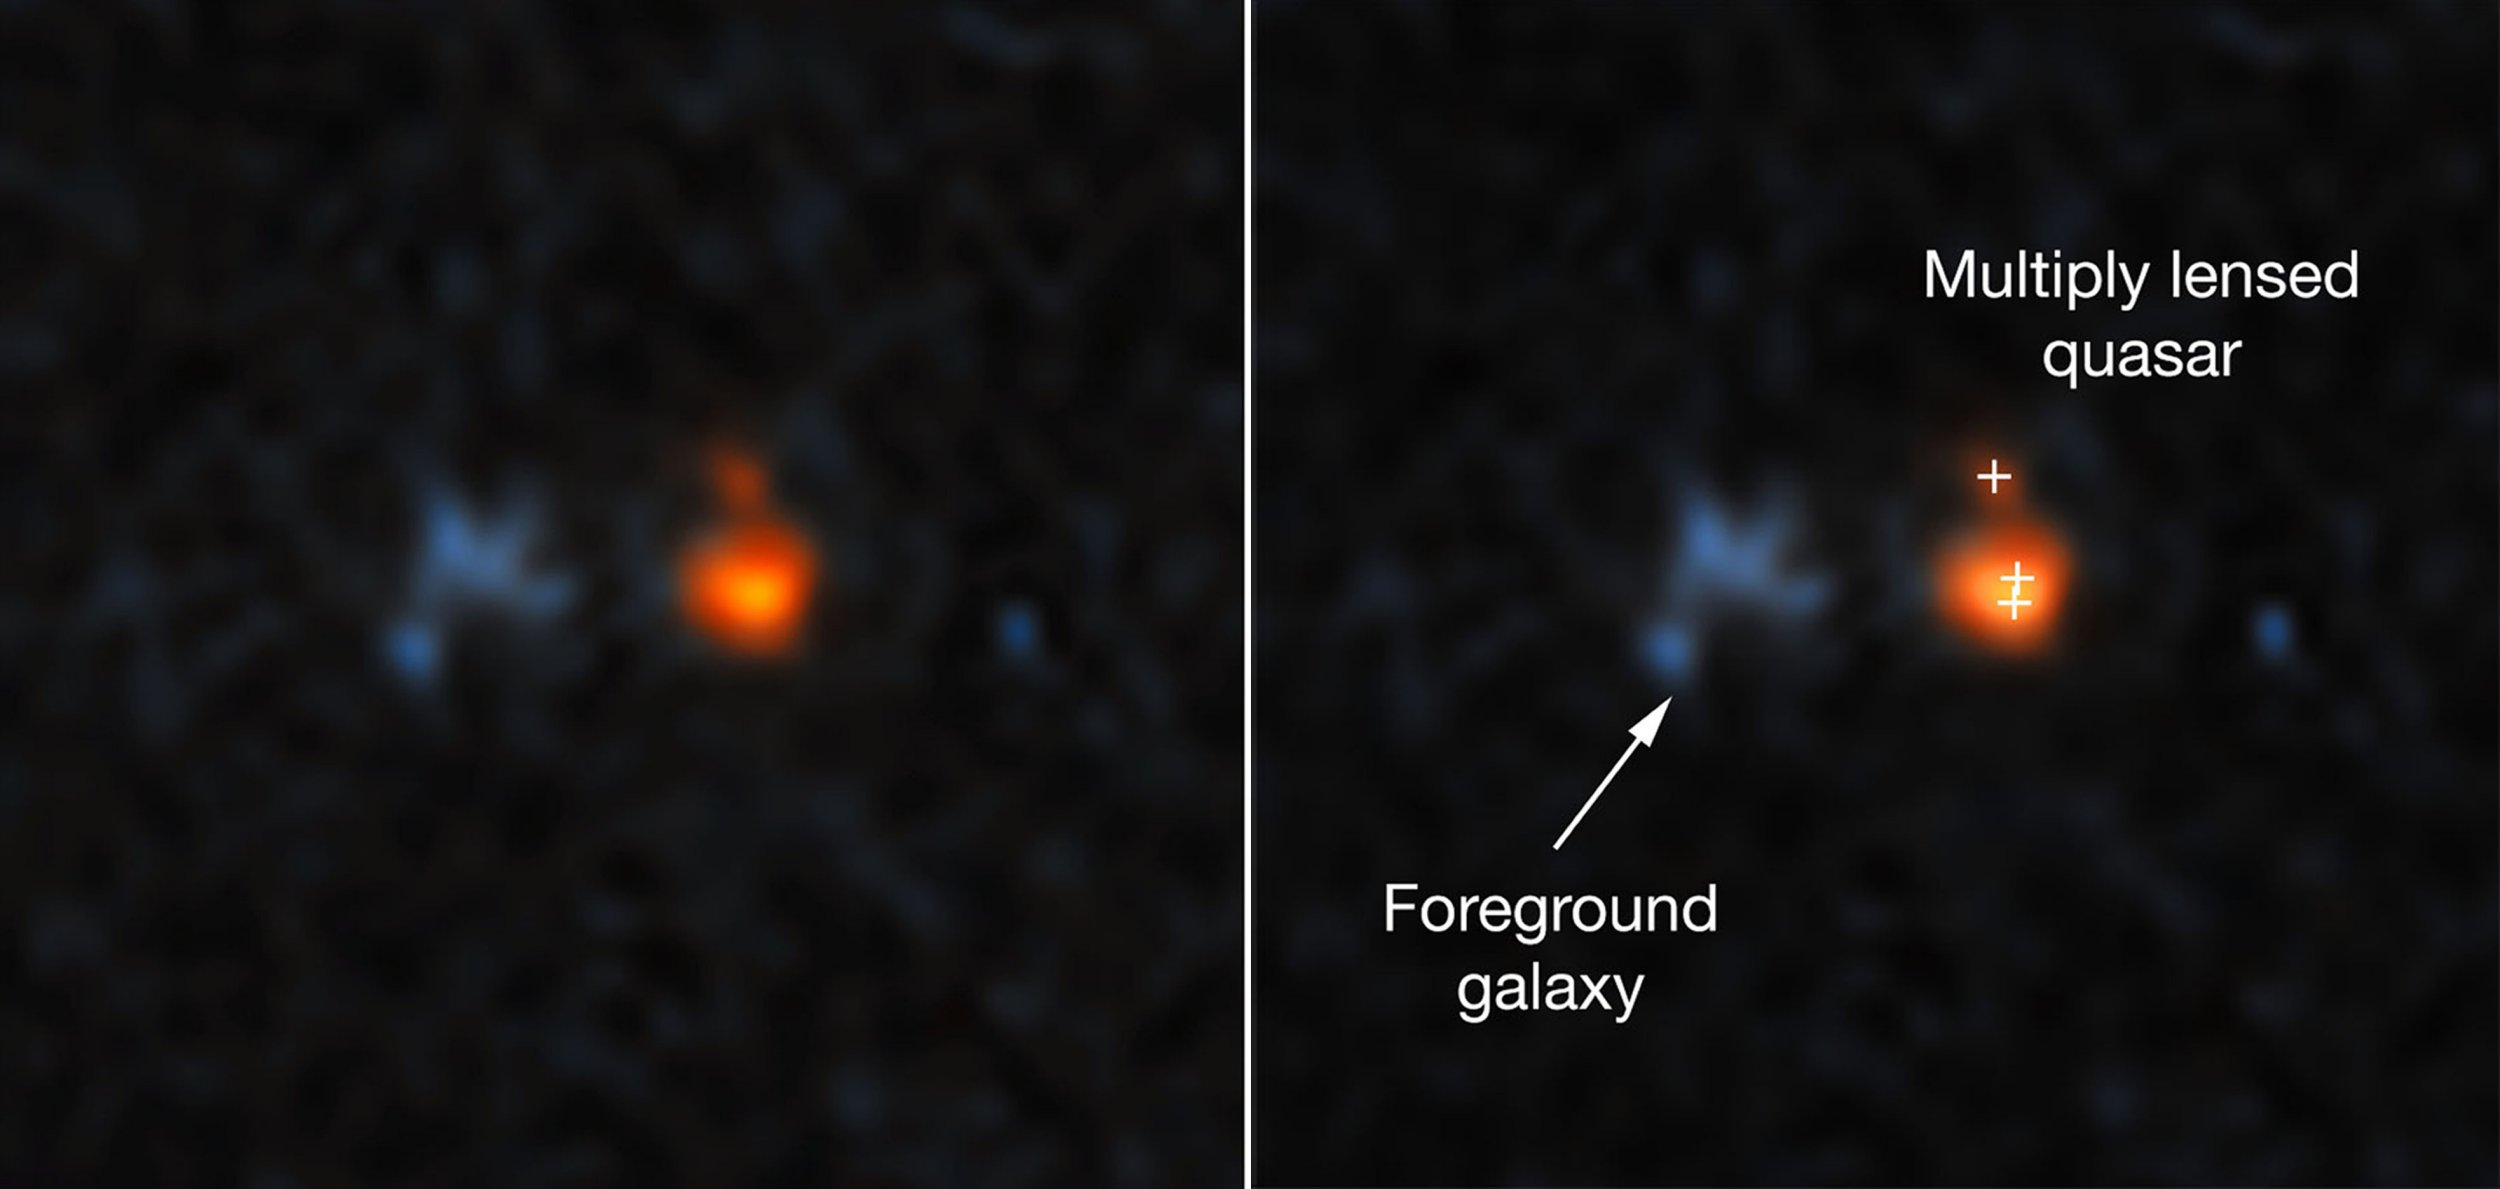 Undated handout photo, with explainer graphic (right), of the Hubble Space Telescope image of a very distant quasar that has been magnified and split into three images by the effects of the gravitational field of a foreground galaxy (left). The Hubble Telescope has discovered the brightest quasar ever seen in the early universe which has the brightness of about 600-trillion suns. PRESS ASSOCIATION Photo. Issue date: Wednesday January 9, 2019. Astronomers used data from the NASA/European Space Agency Hubble Space Telescope to find the ancient quasar, which they believe can provides an insight into the birth of galaxies when the Universe was about a billion years old. See PA story SCIENCE Hubble. Photo credit should read: NASA, ESA, and X. Fan (University of Arizona)/PA Wire NOTE TO EDITORS: This handout photo may only be used in for editorial reporting purposes for the contemporaneous illustration of events, things or the people in the image or facts mentioned in the caption. Reuse of the picture may require further permission from the copyright holder.